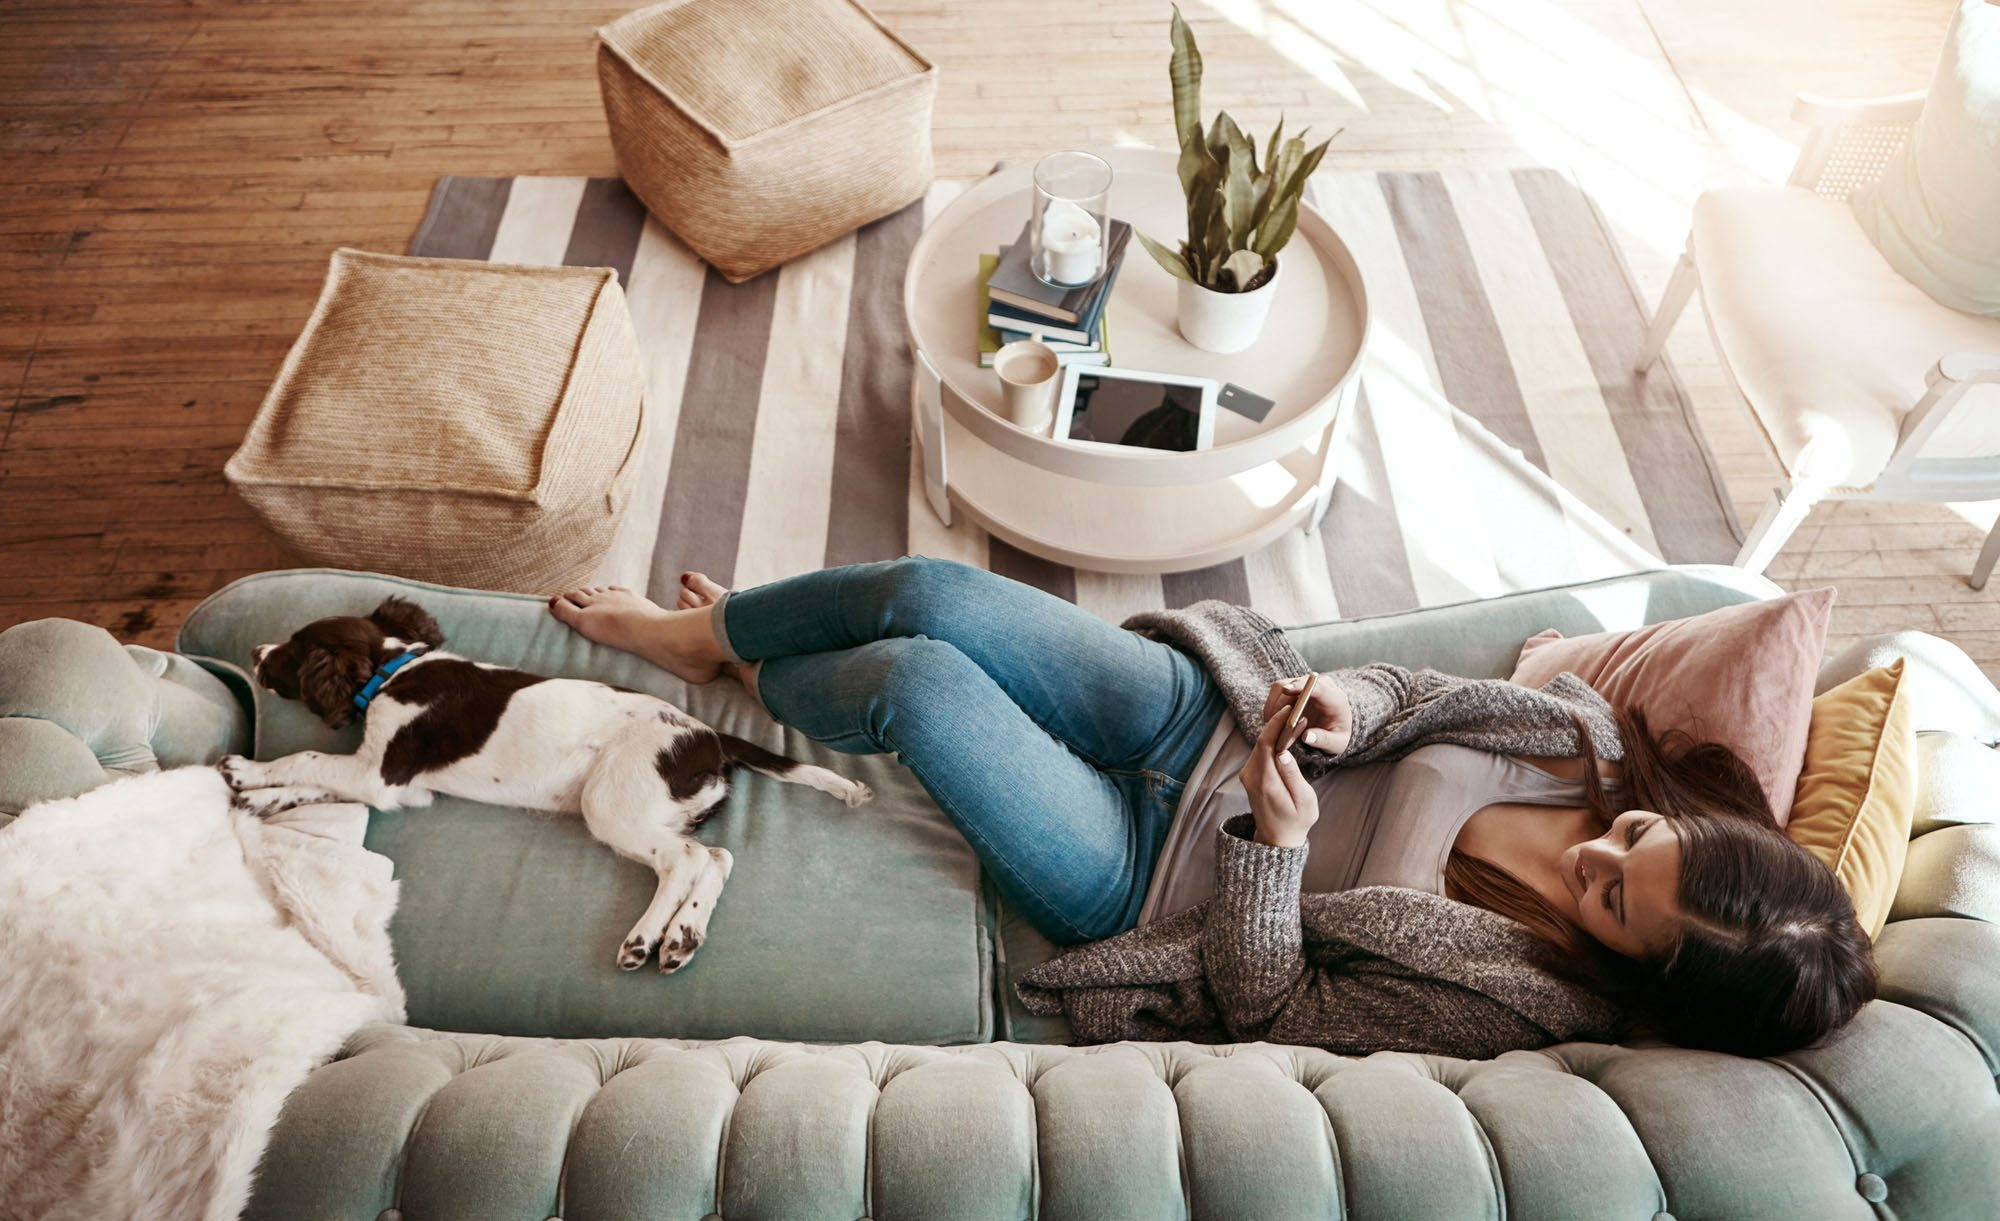 stock image- woman on couch with pet